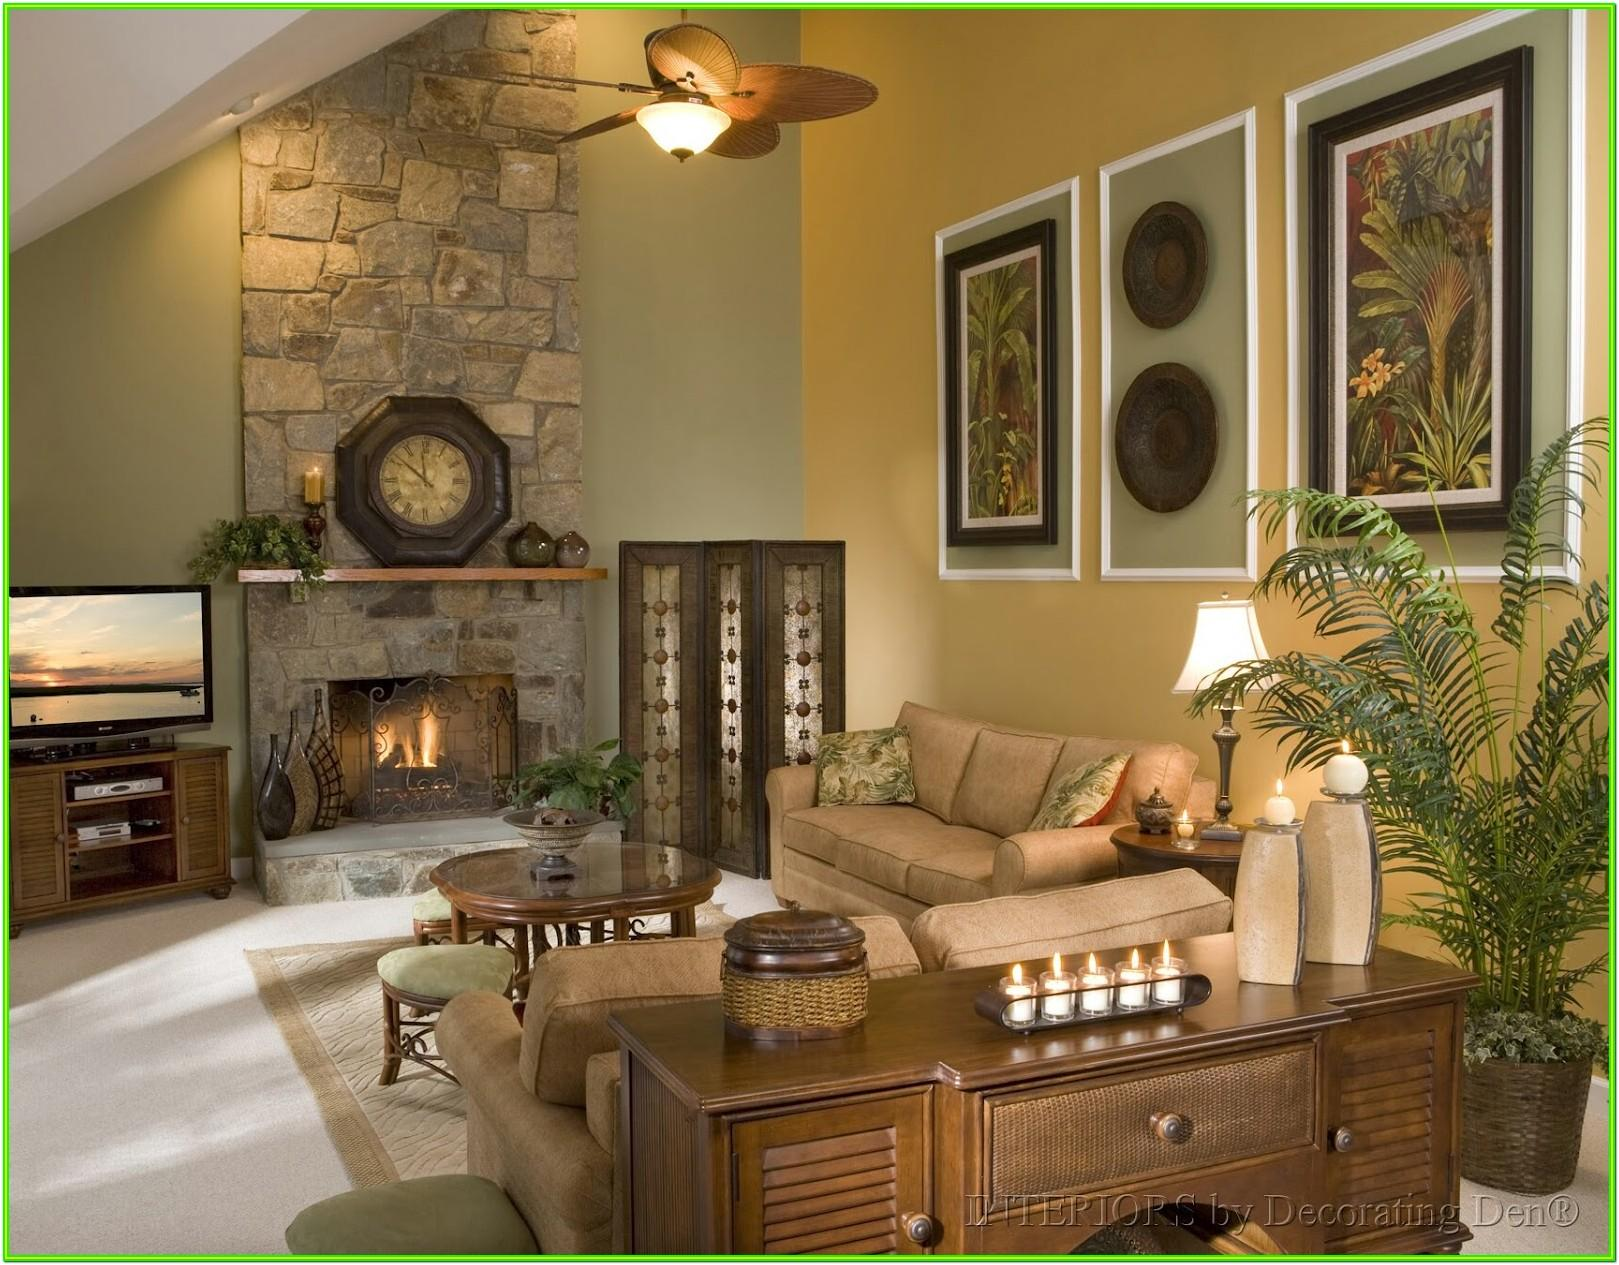 Decorating A Large Living Room With High Ceilings